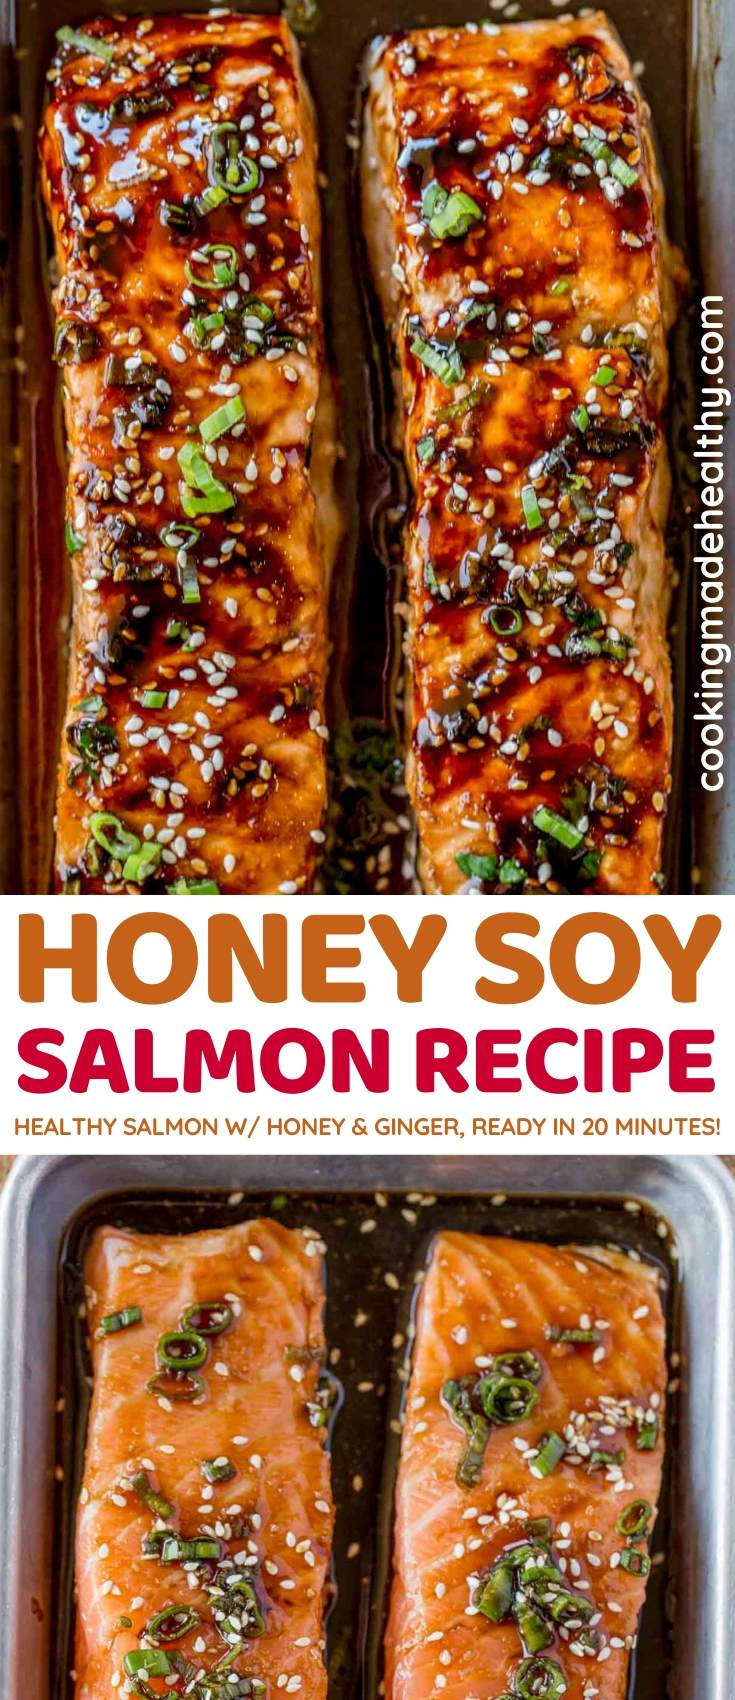 Honey Soy Salmon collage